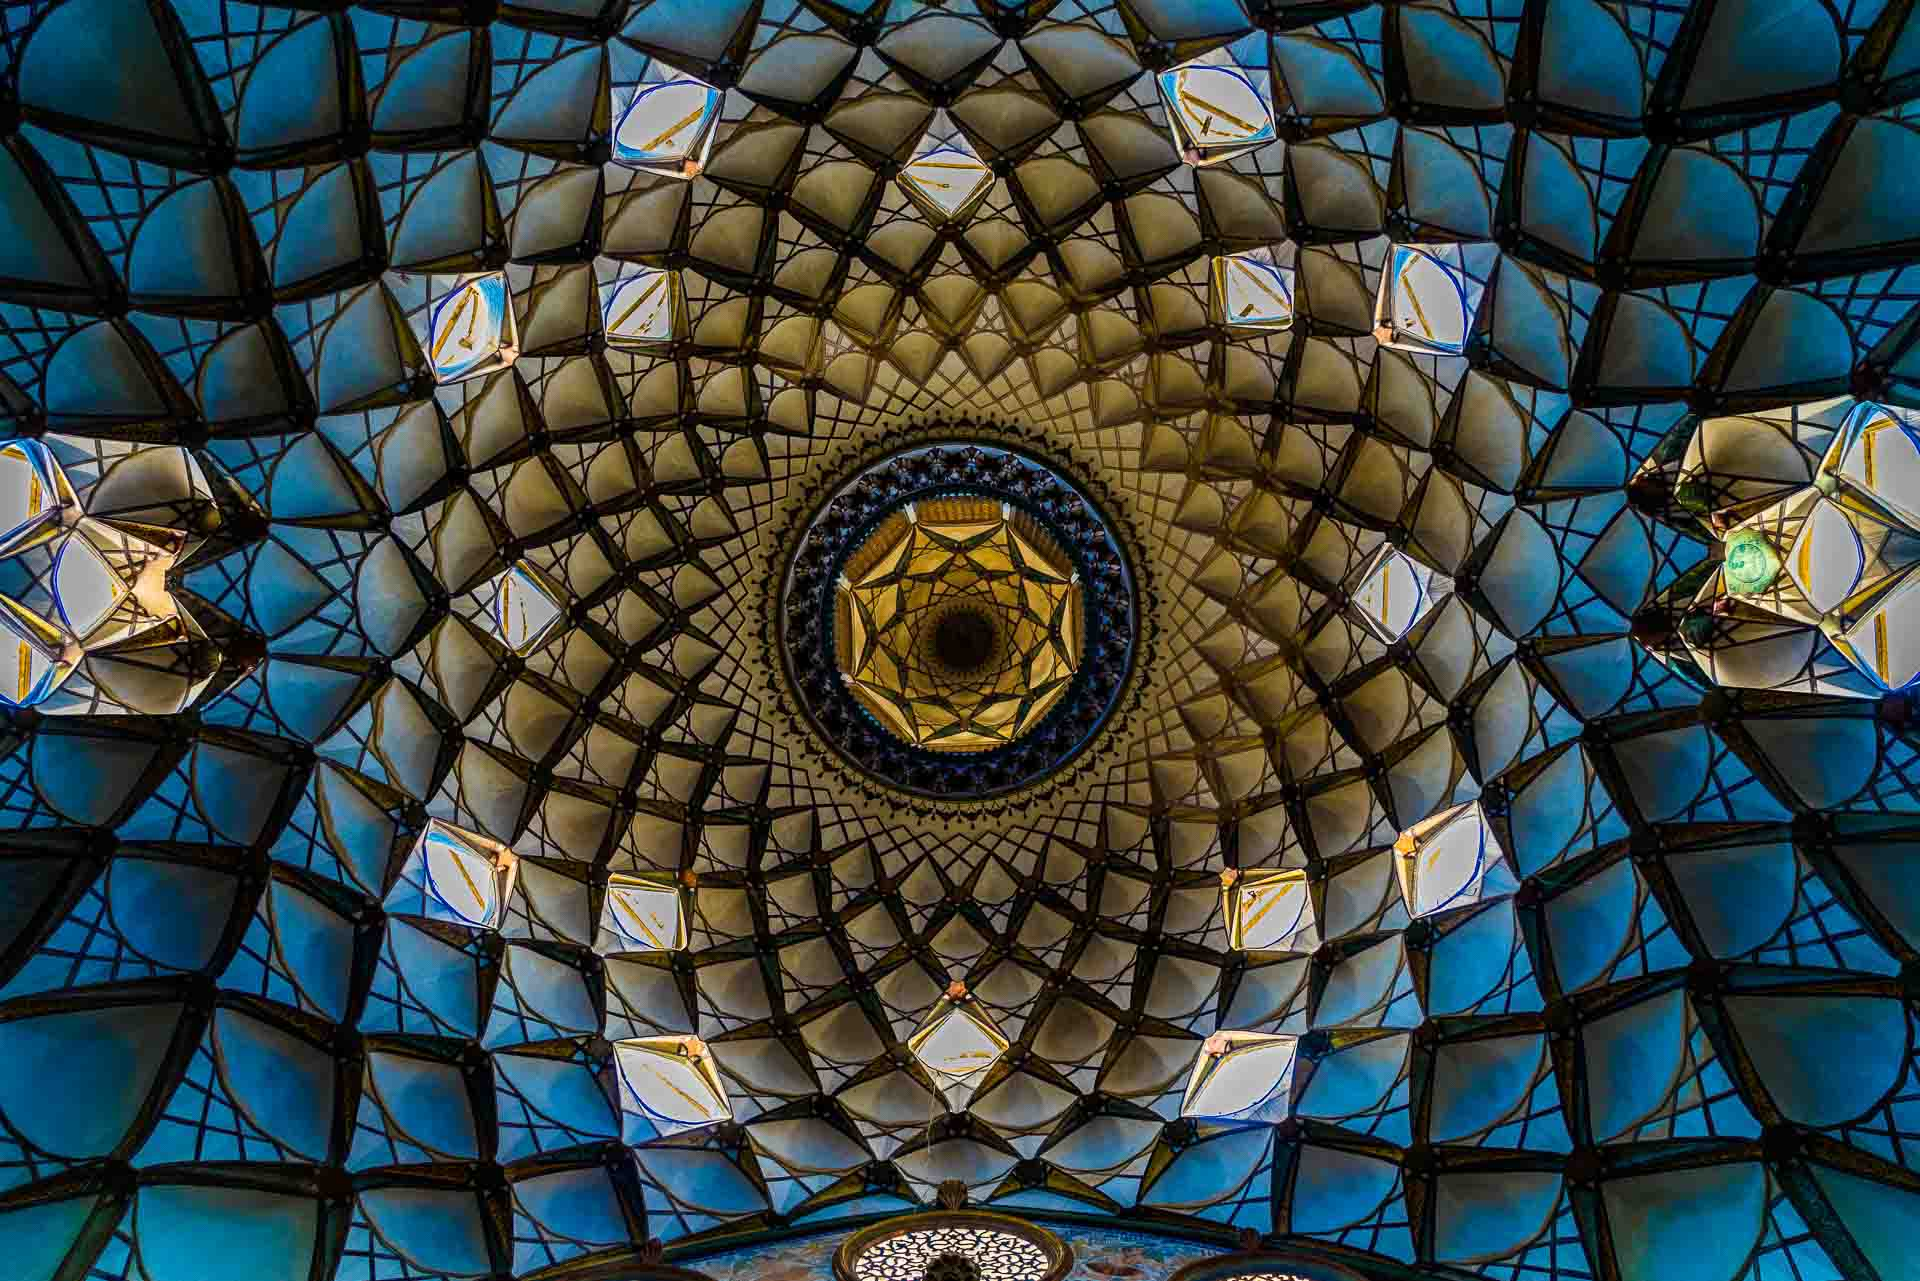 Borujerdi Historical House 2, kashan, iran, pescart, photo blog, travel blog, blog, photo travel blog, enrico pescantini, pescantini